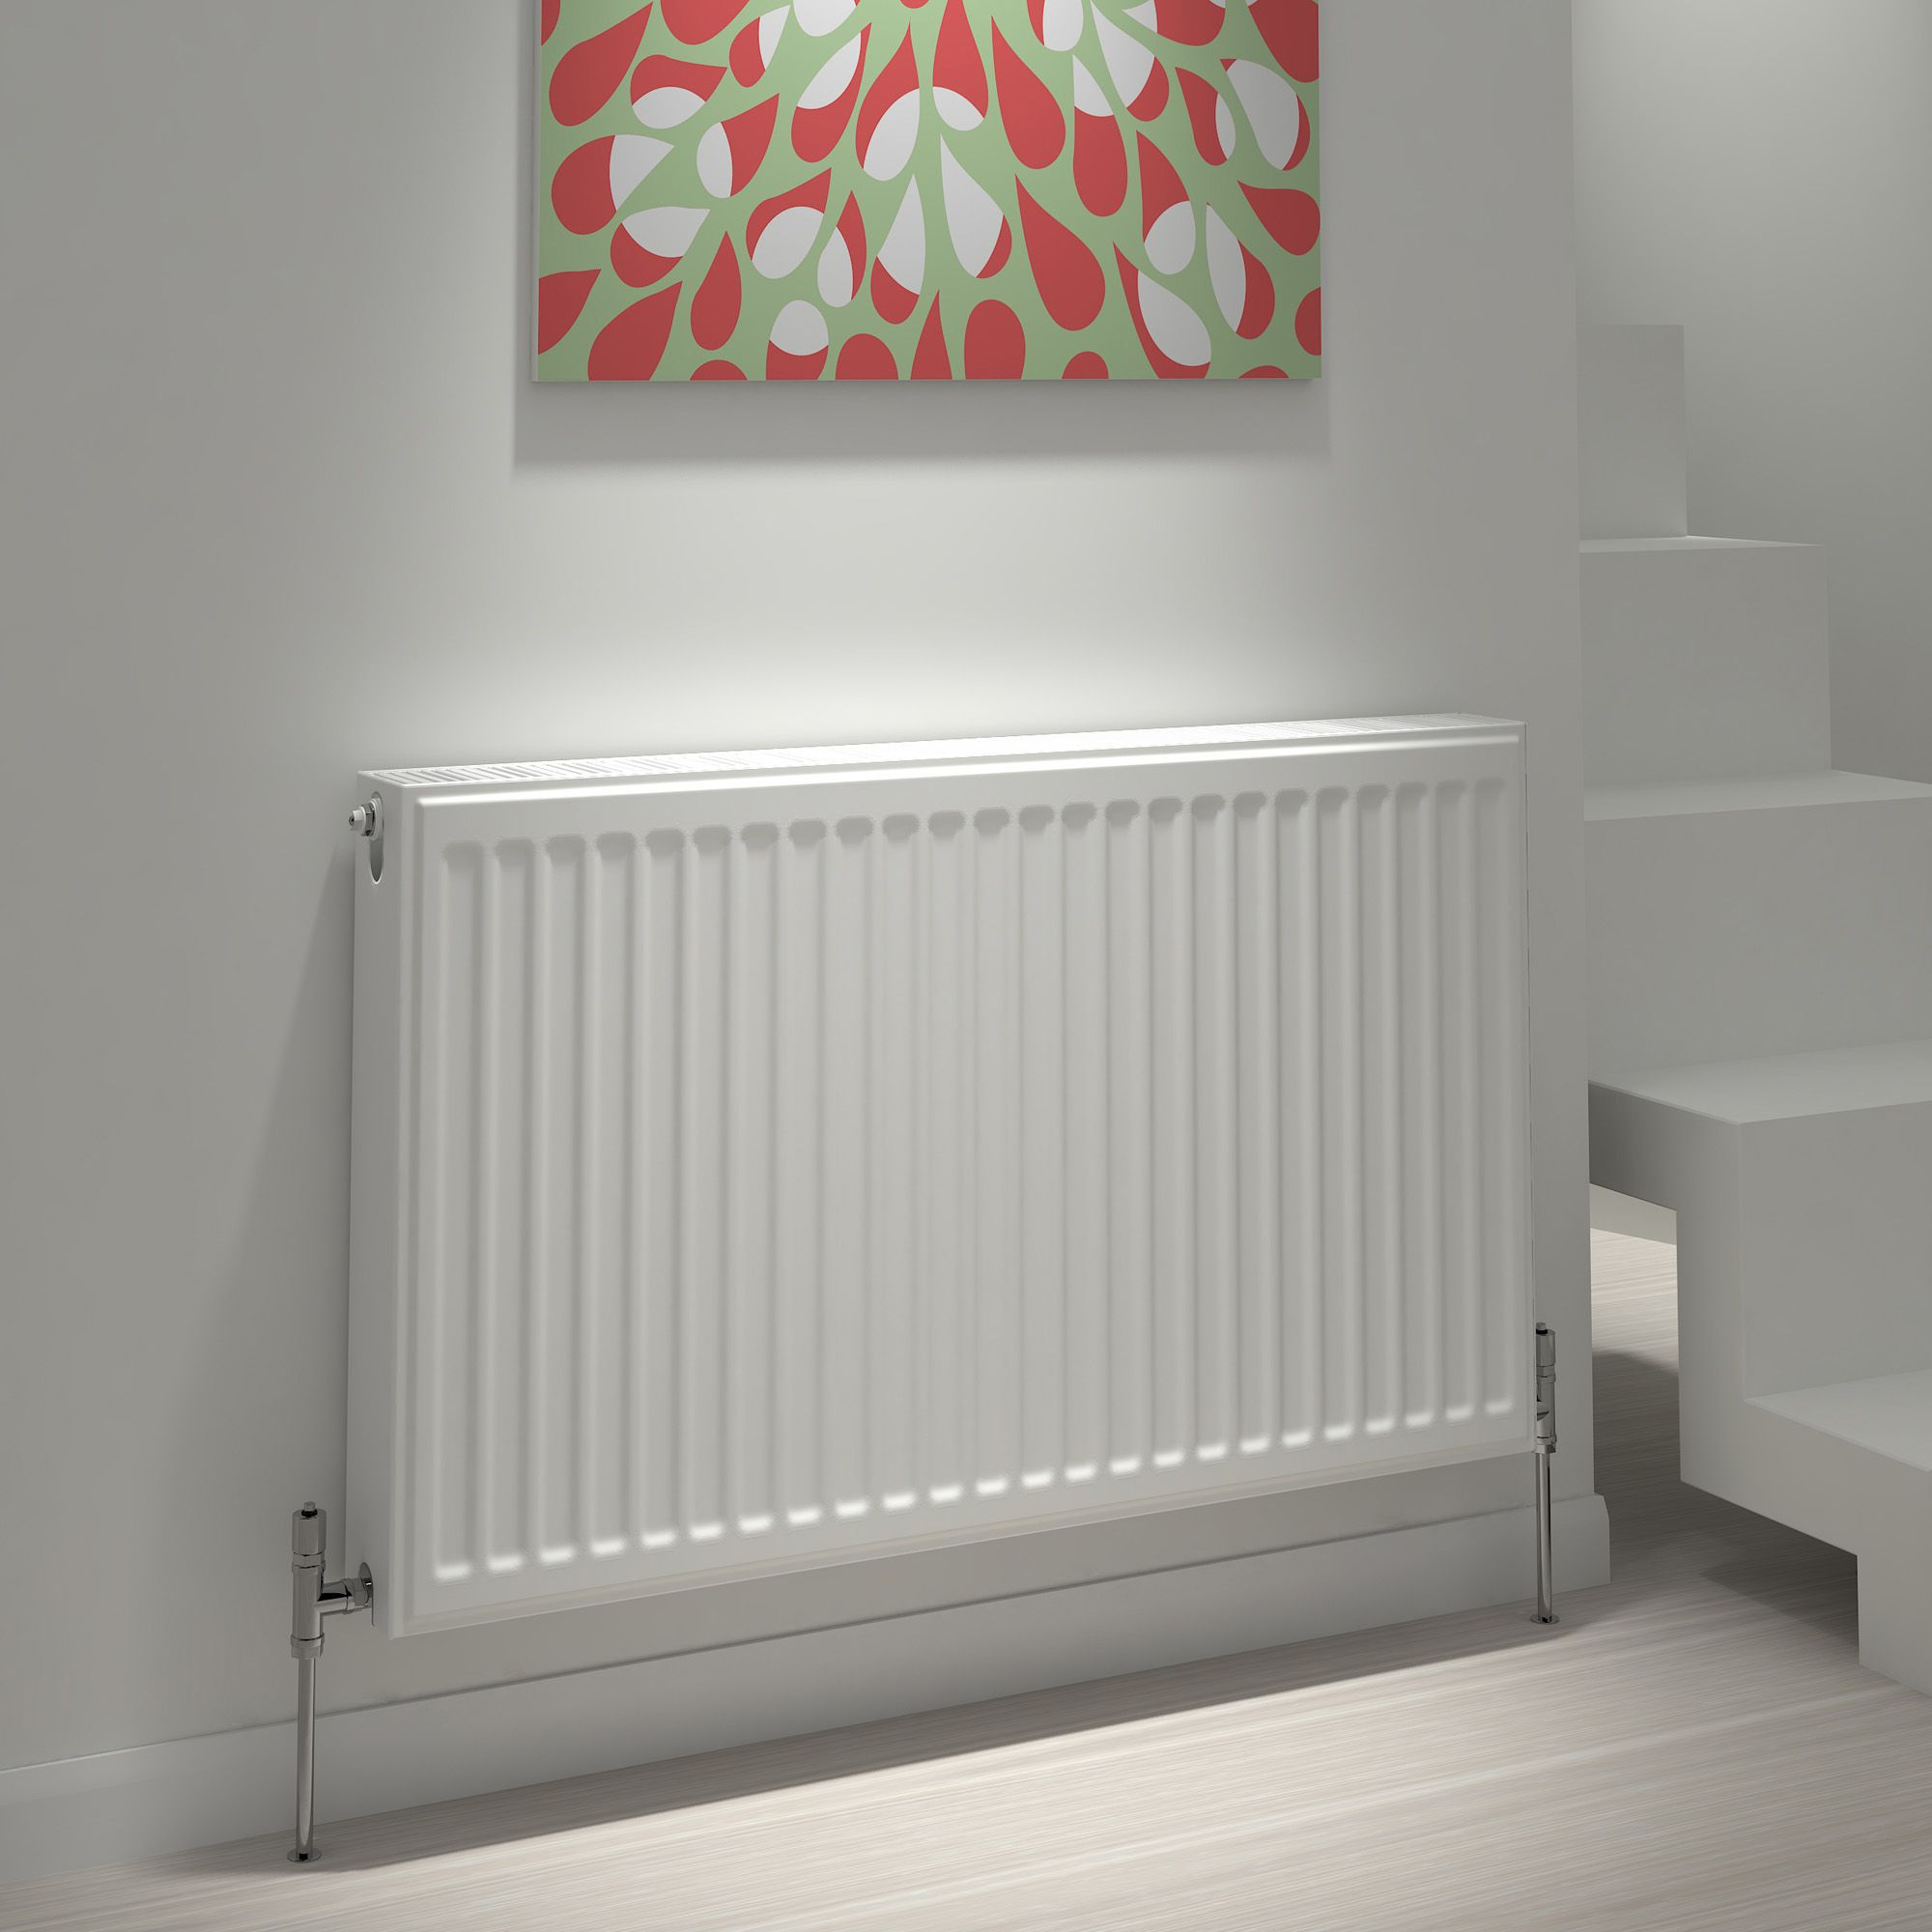 Kudox Type 22 Double Panel Radiator, (H)600mm (W)600mm